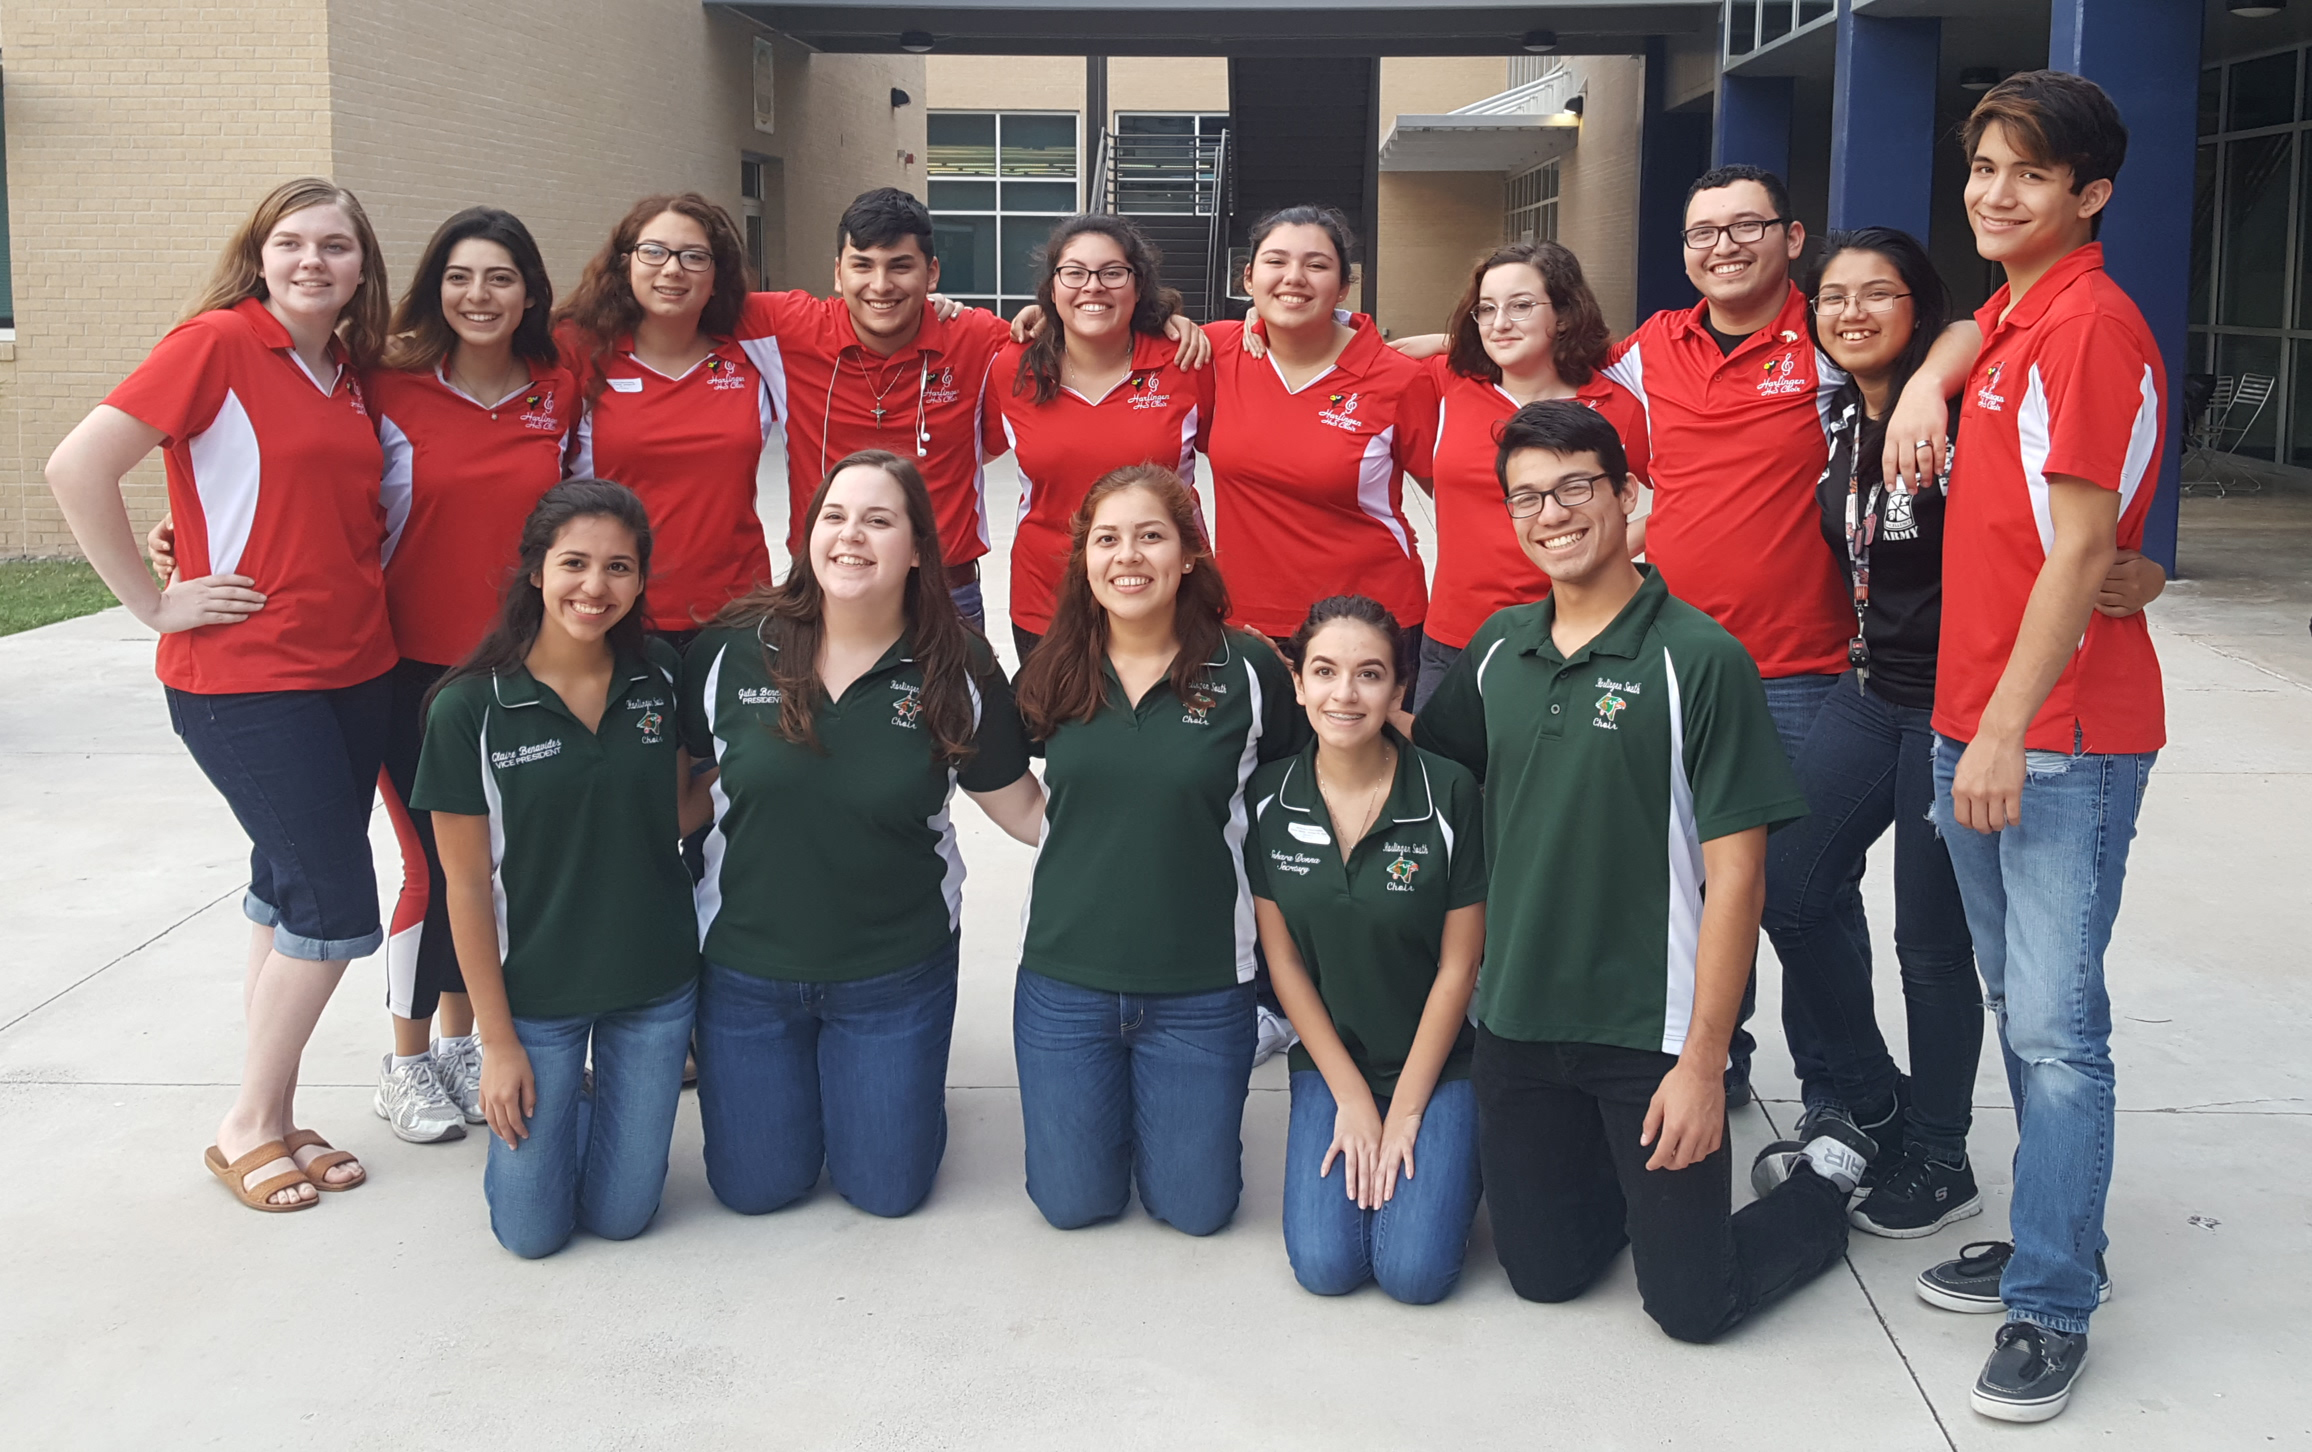 HHS and HHSS Choir students advance to Area Auditions